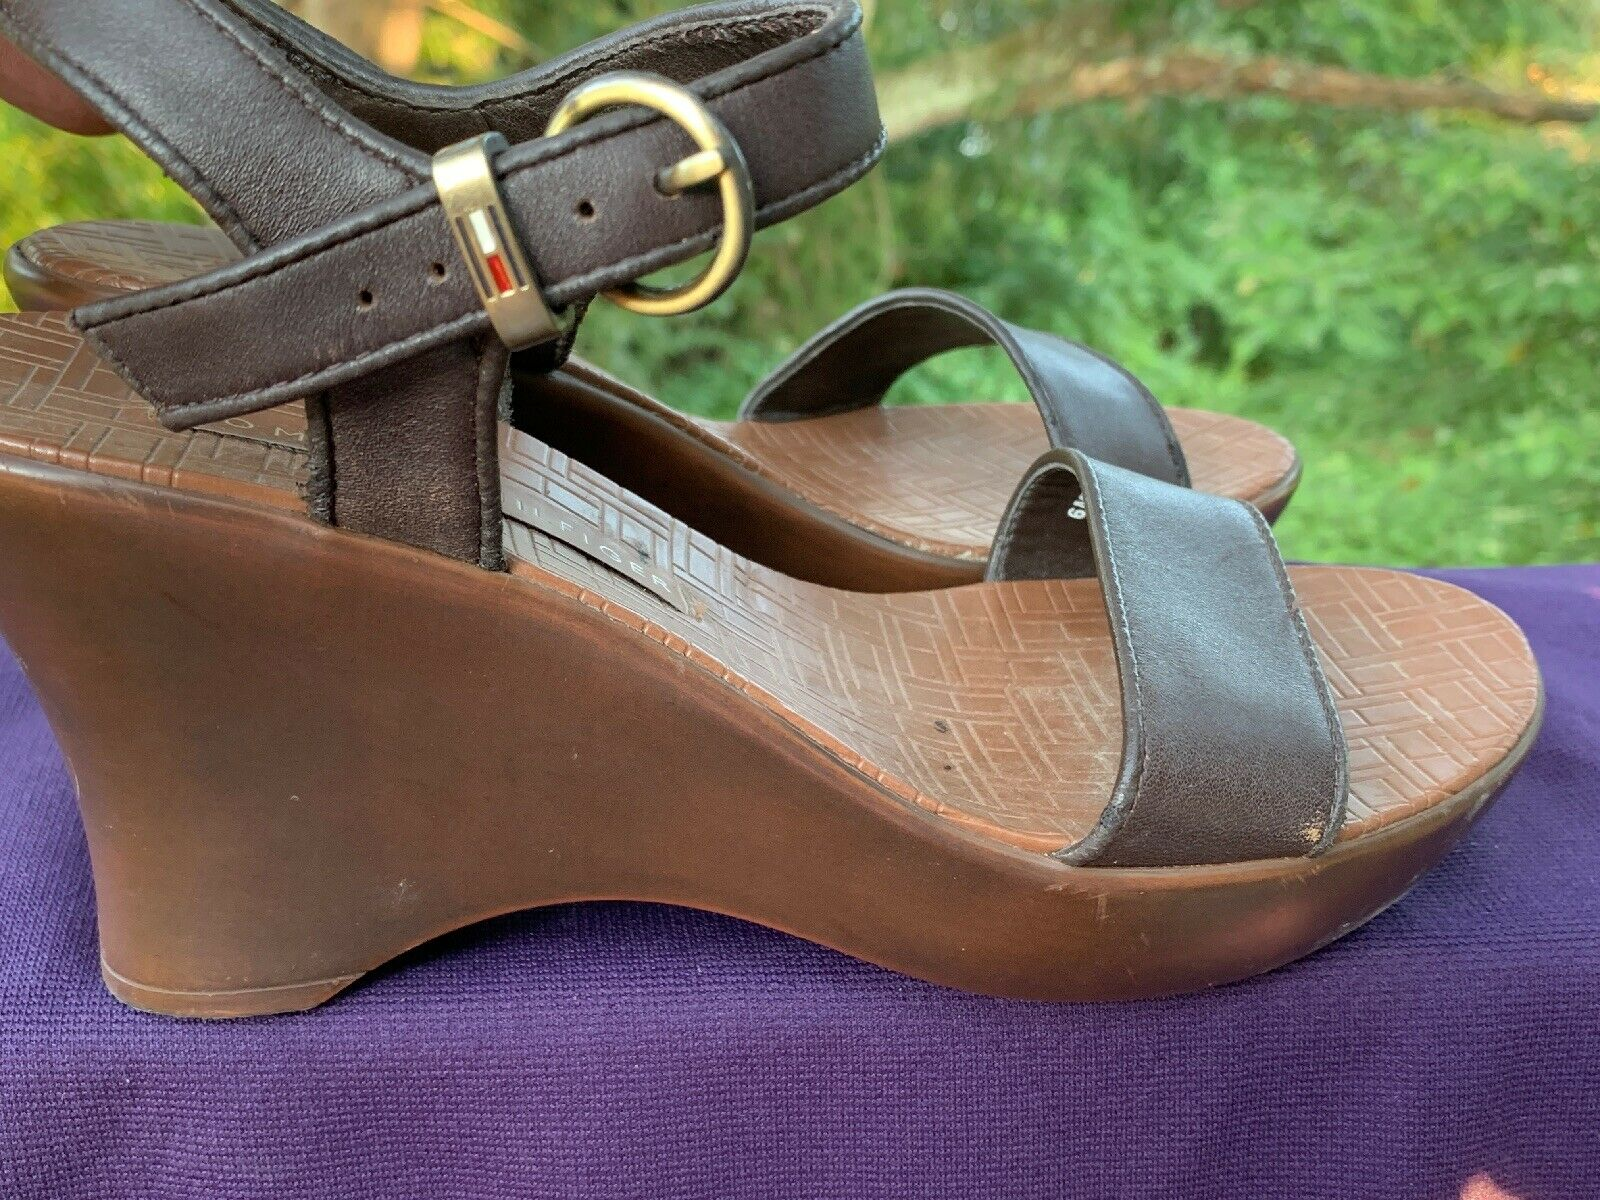 TOMMY HILFIGER Leather Slingbacks Clogs Mules Wed… - image 2